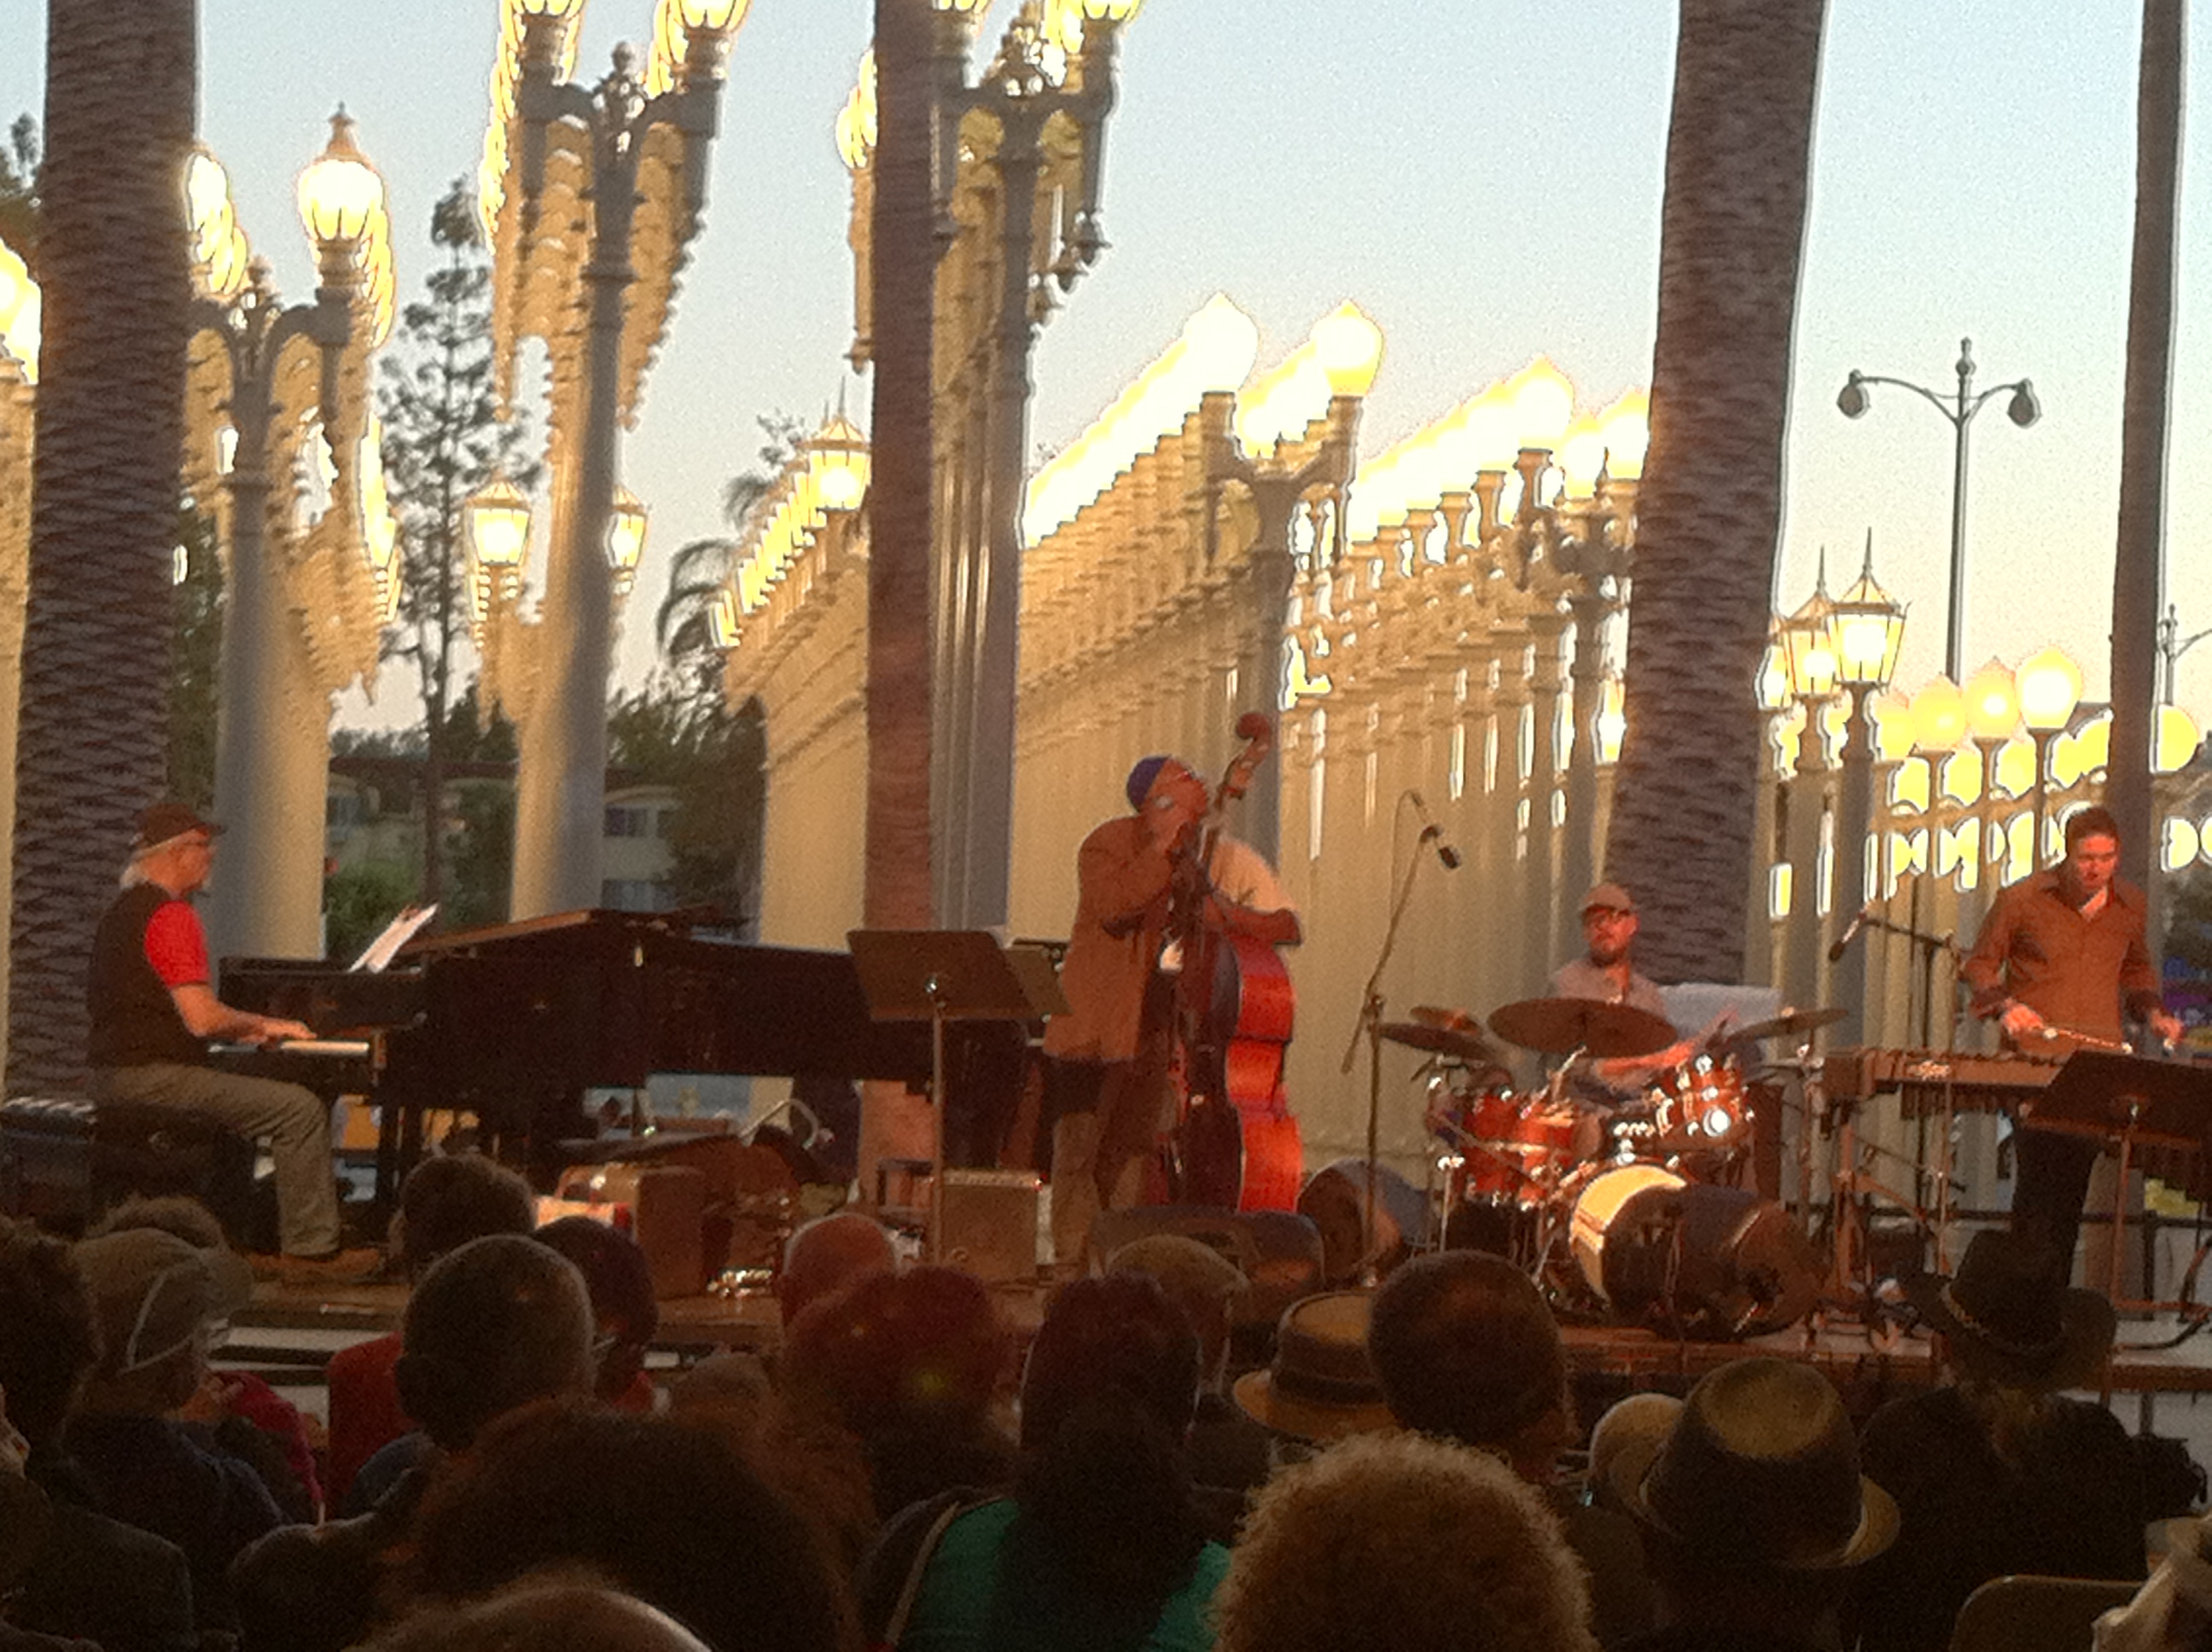 Dwight Trible performs at Jazz at LACMA